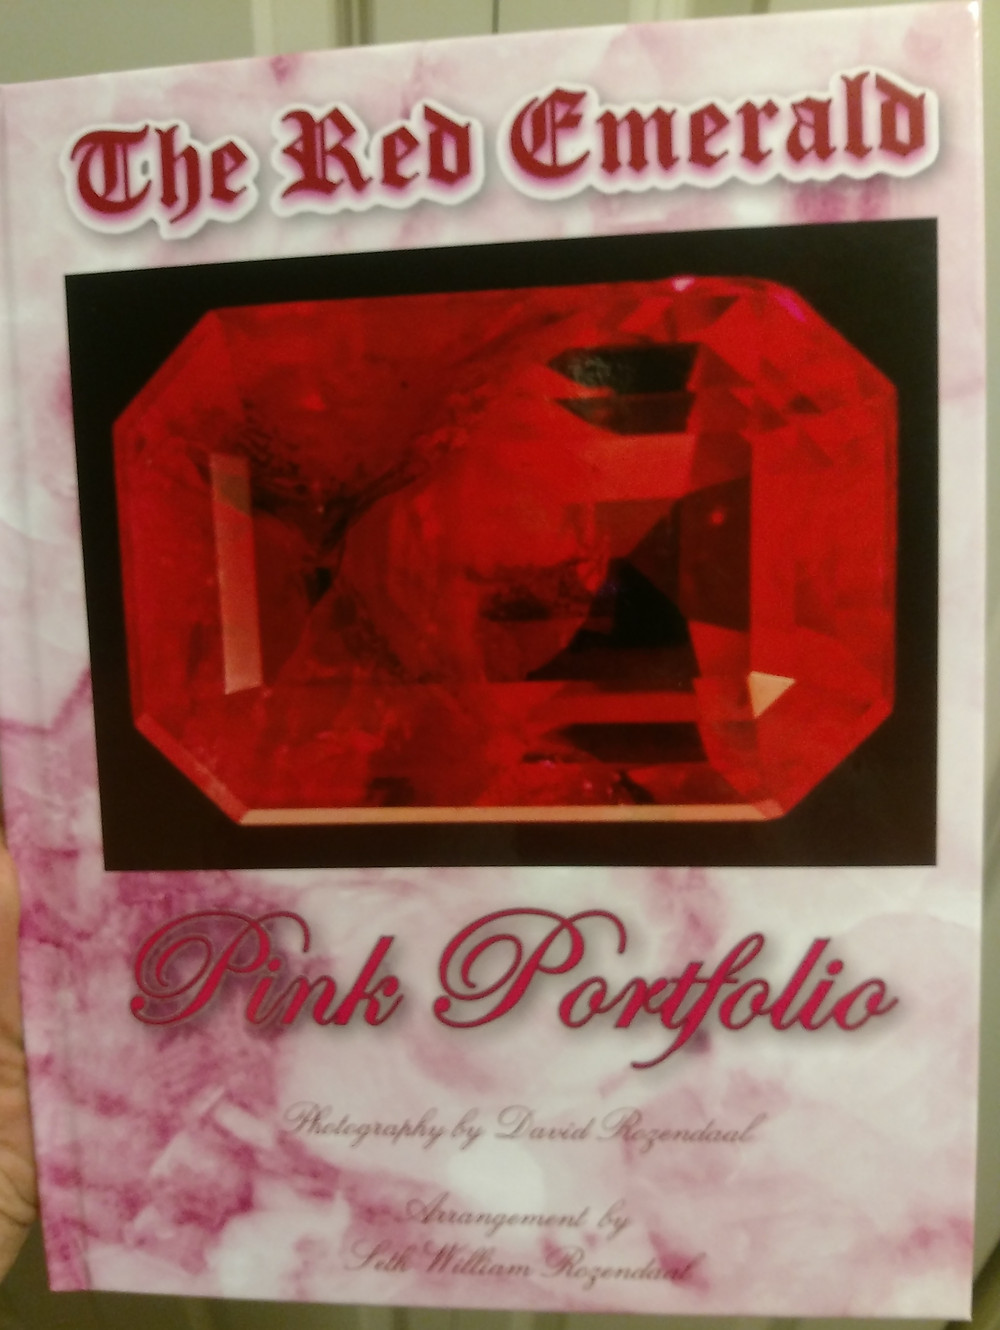 The Red Emerald Pink Portfolio